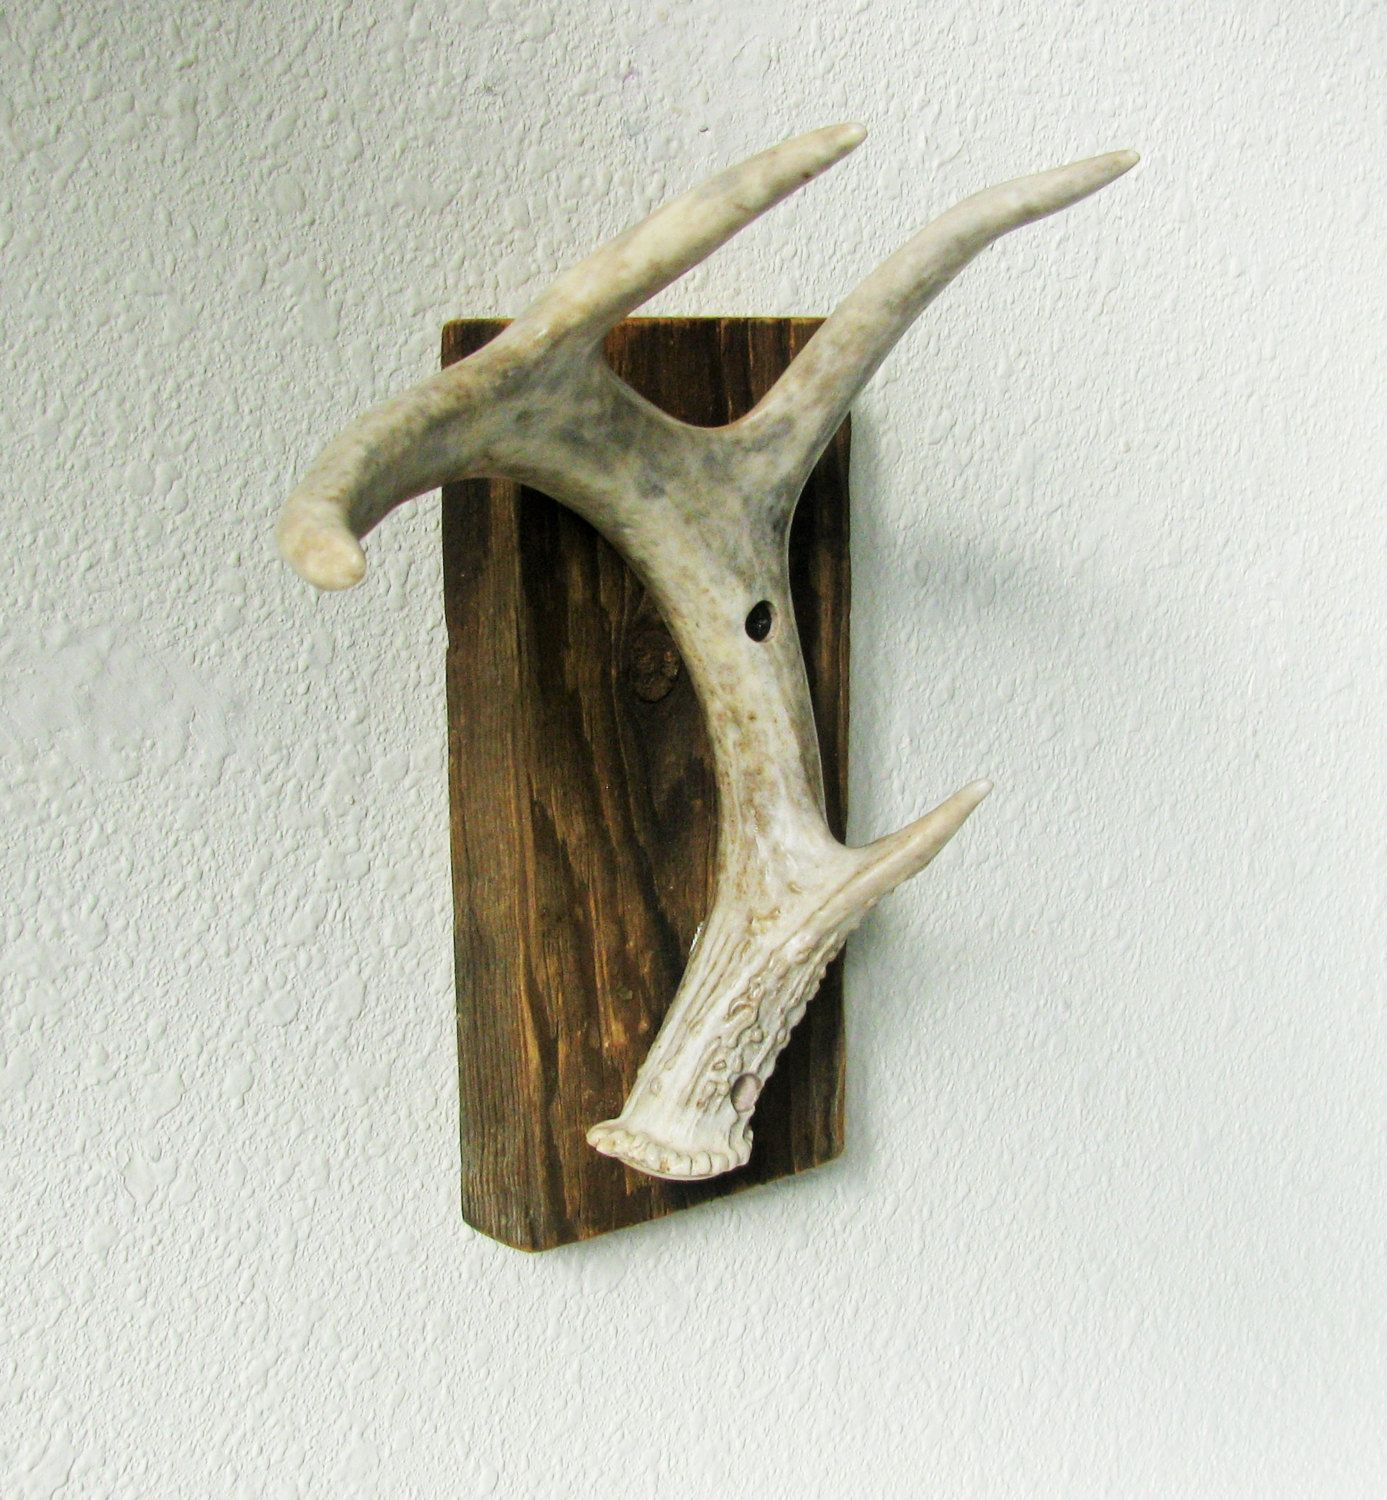 Natural three point with eyeguard Whitetail Deer Antler shed Wall Hook on  Barnwood for towel hook, hat rack, hunters gift, mancave decor